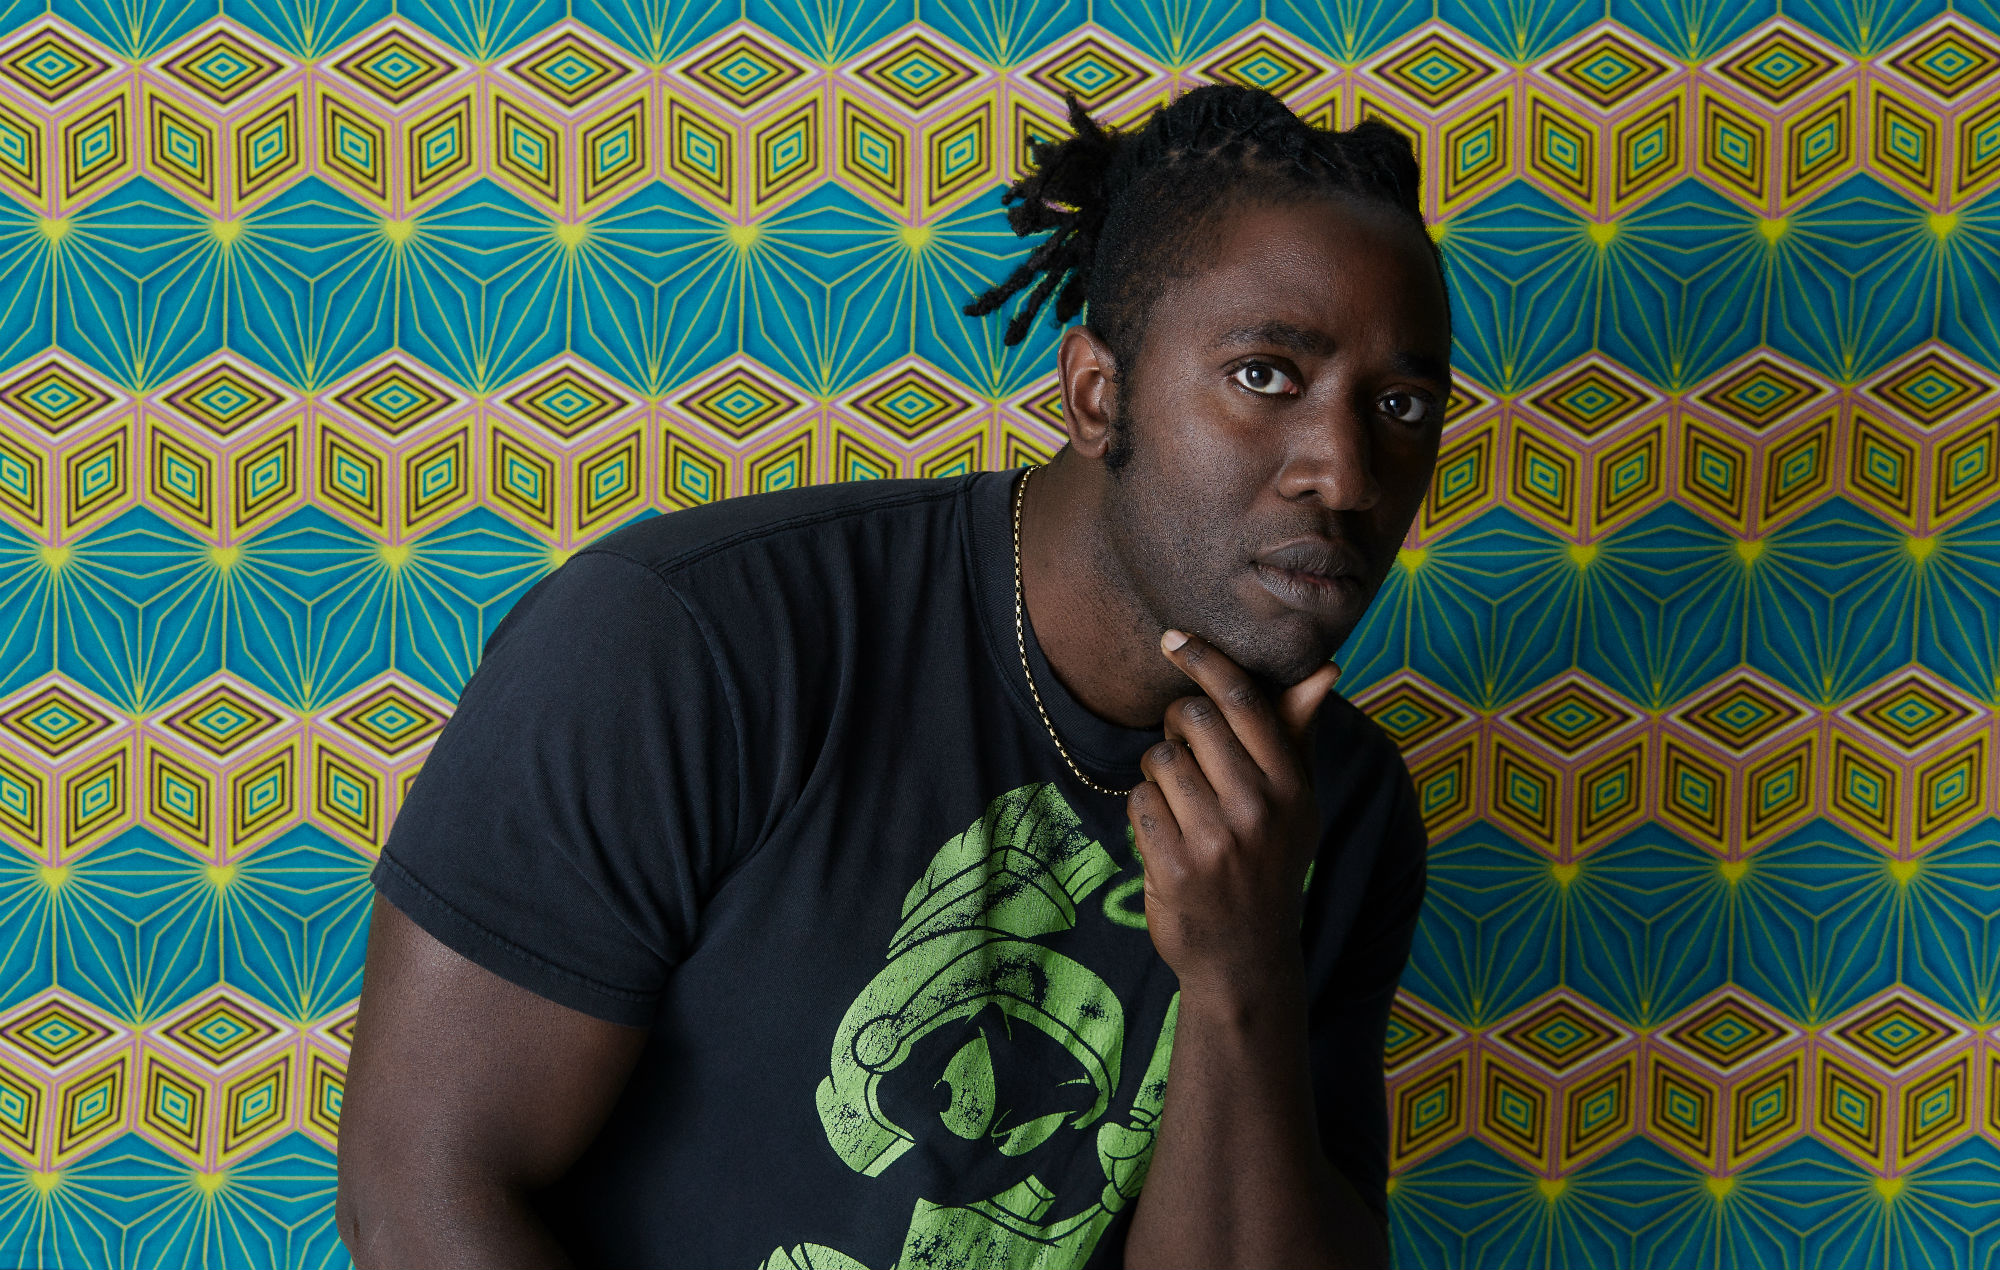 Kele Okereke – '2042' review: the Bloc Party frontman wows with politically charged funk and experimental electro